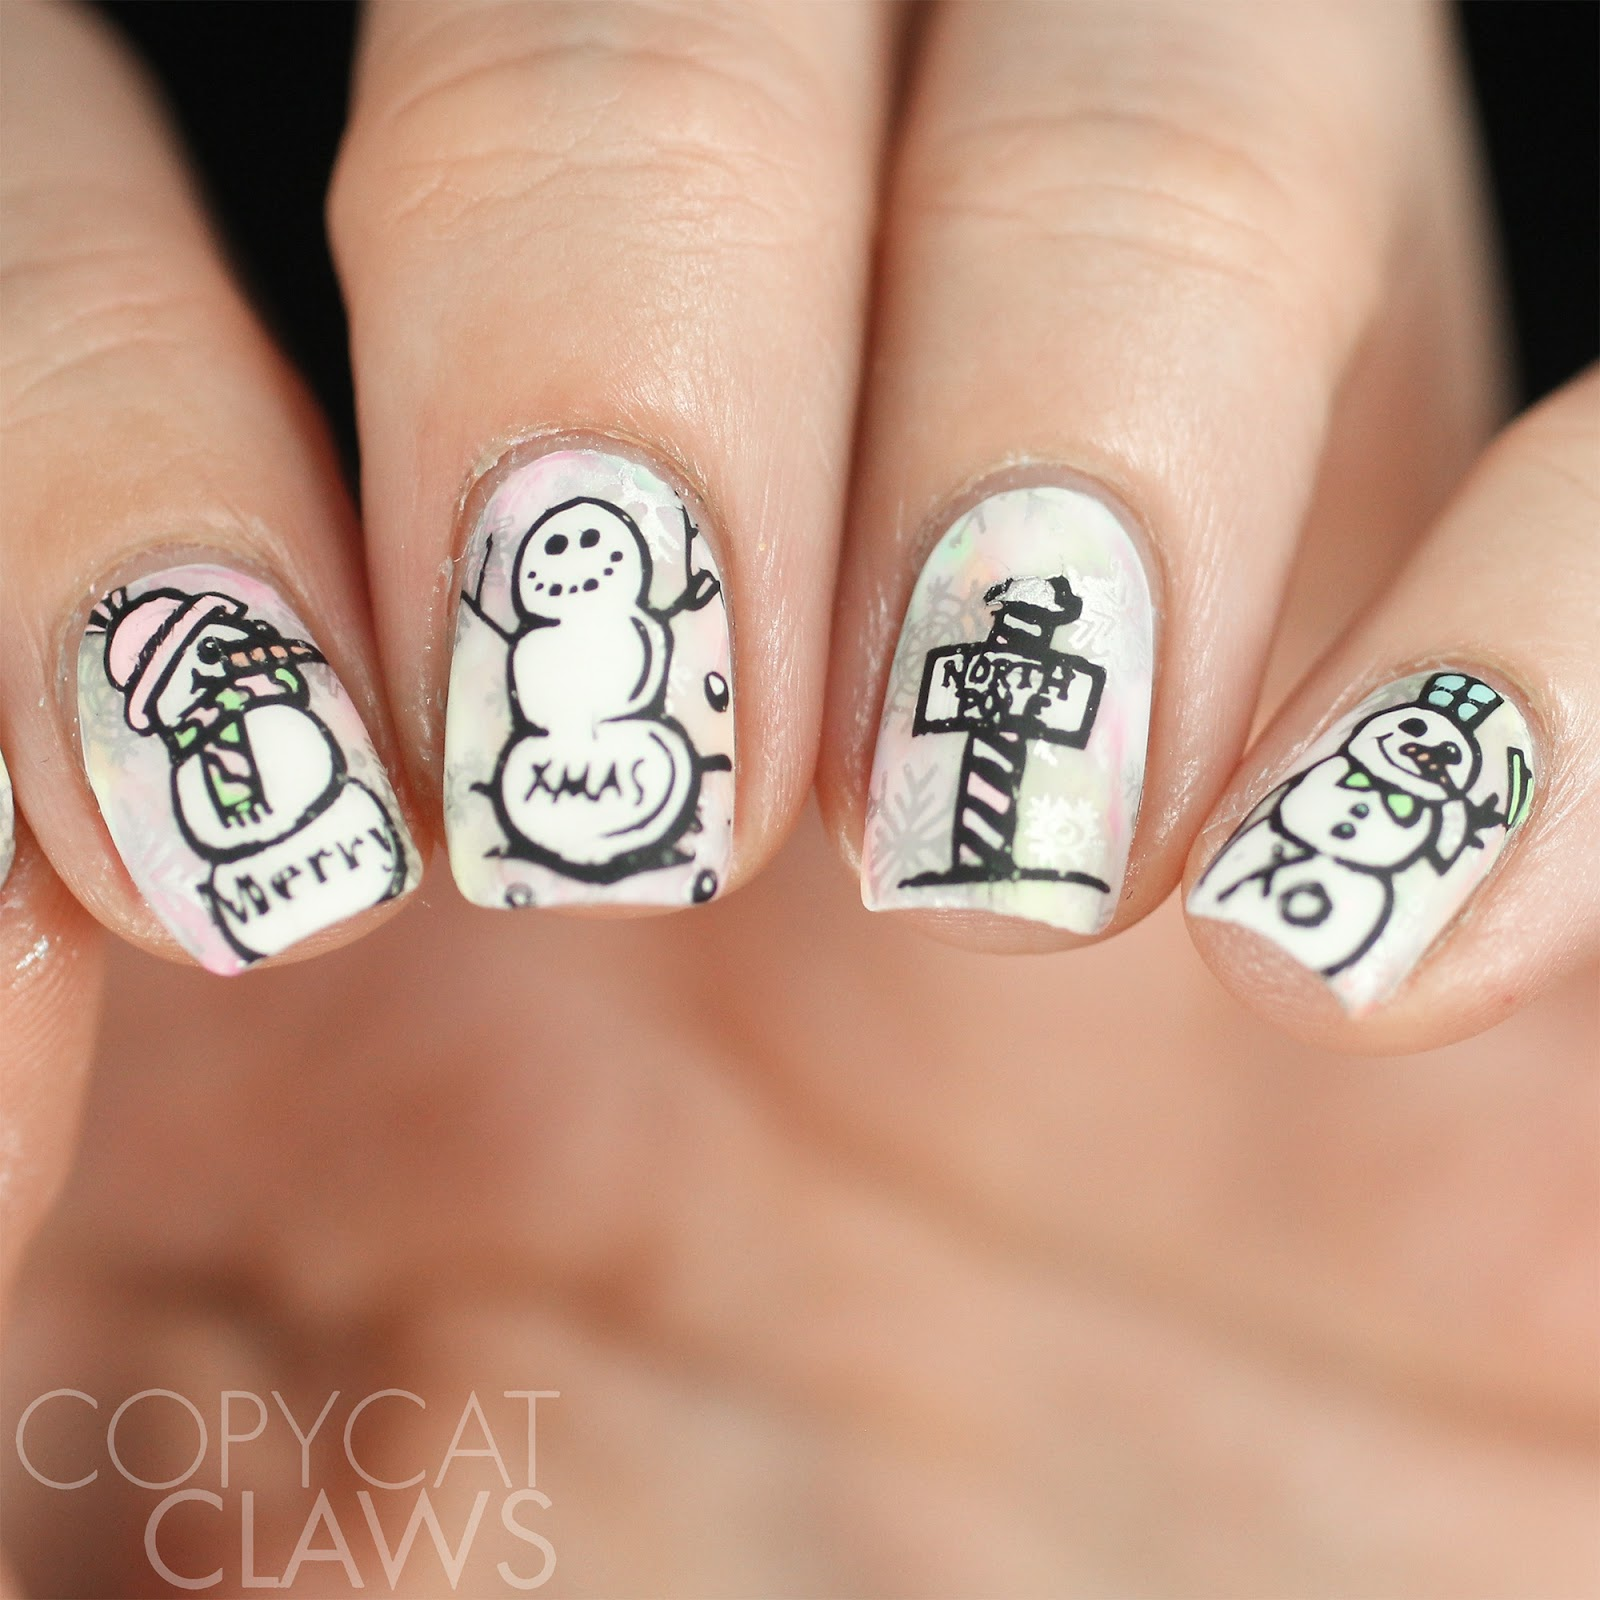 Copycat Claws: 26 Great Nail Art Ideas - Pastel Christmas